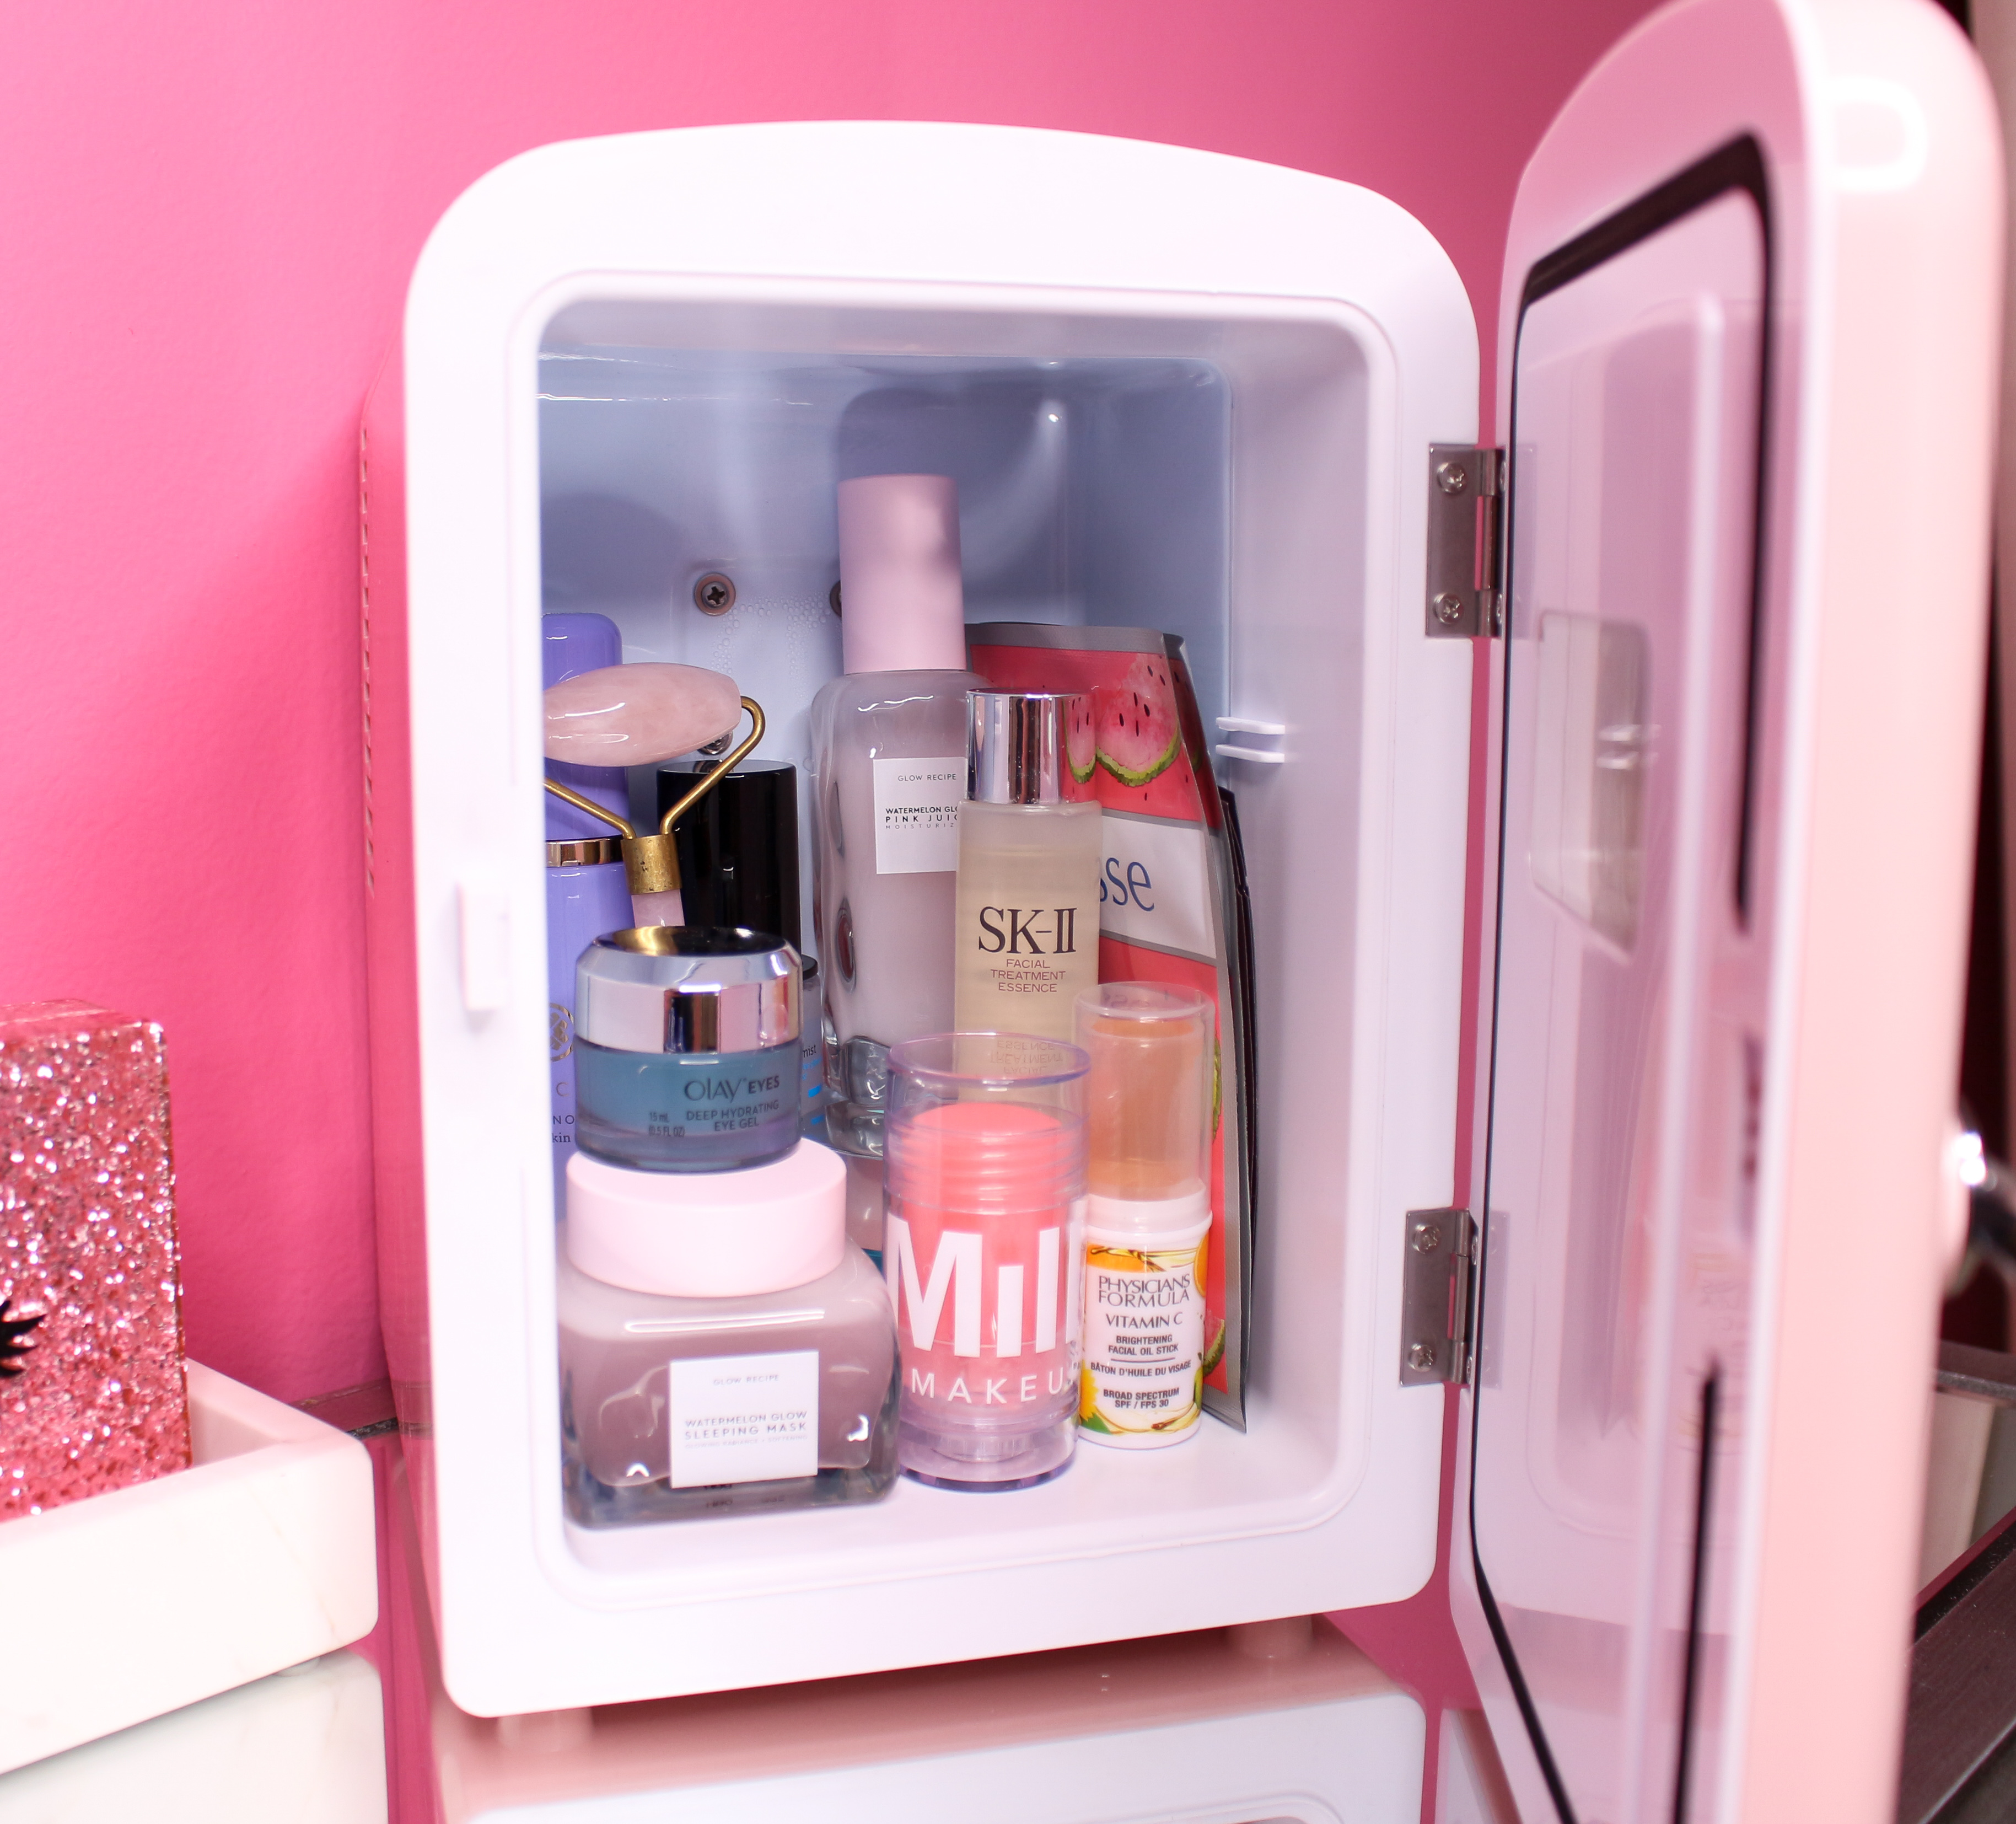 Surprising Whats In My Skincare Fridge Skincare Fridge Tour Love Home Interior And Landscaping Transignezvosmurscom